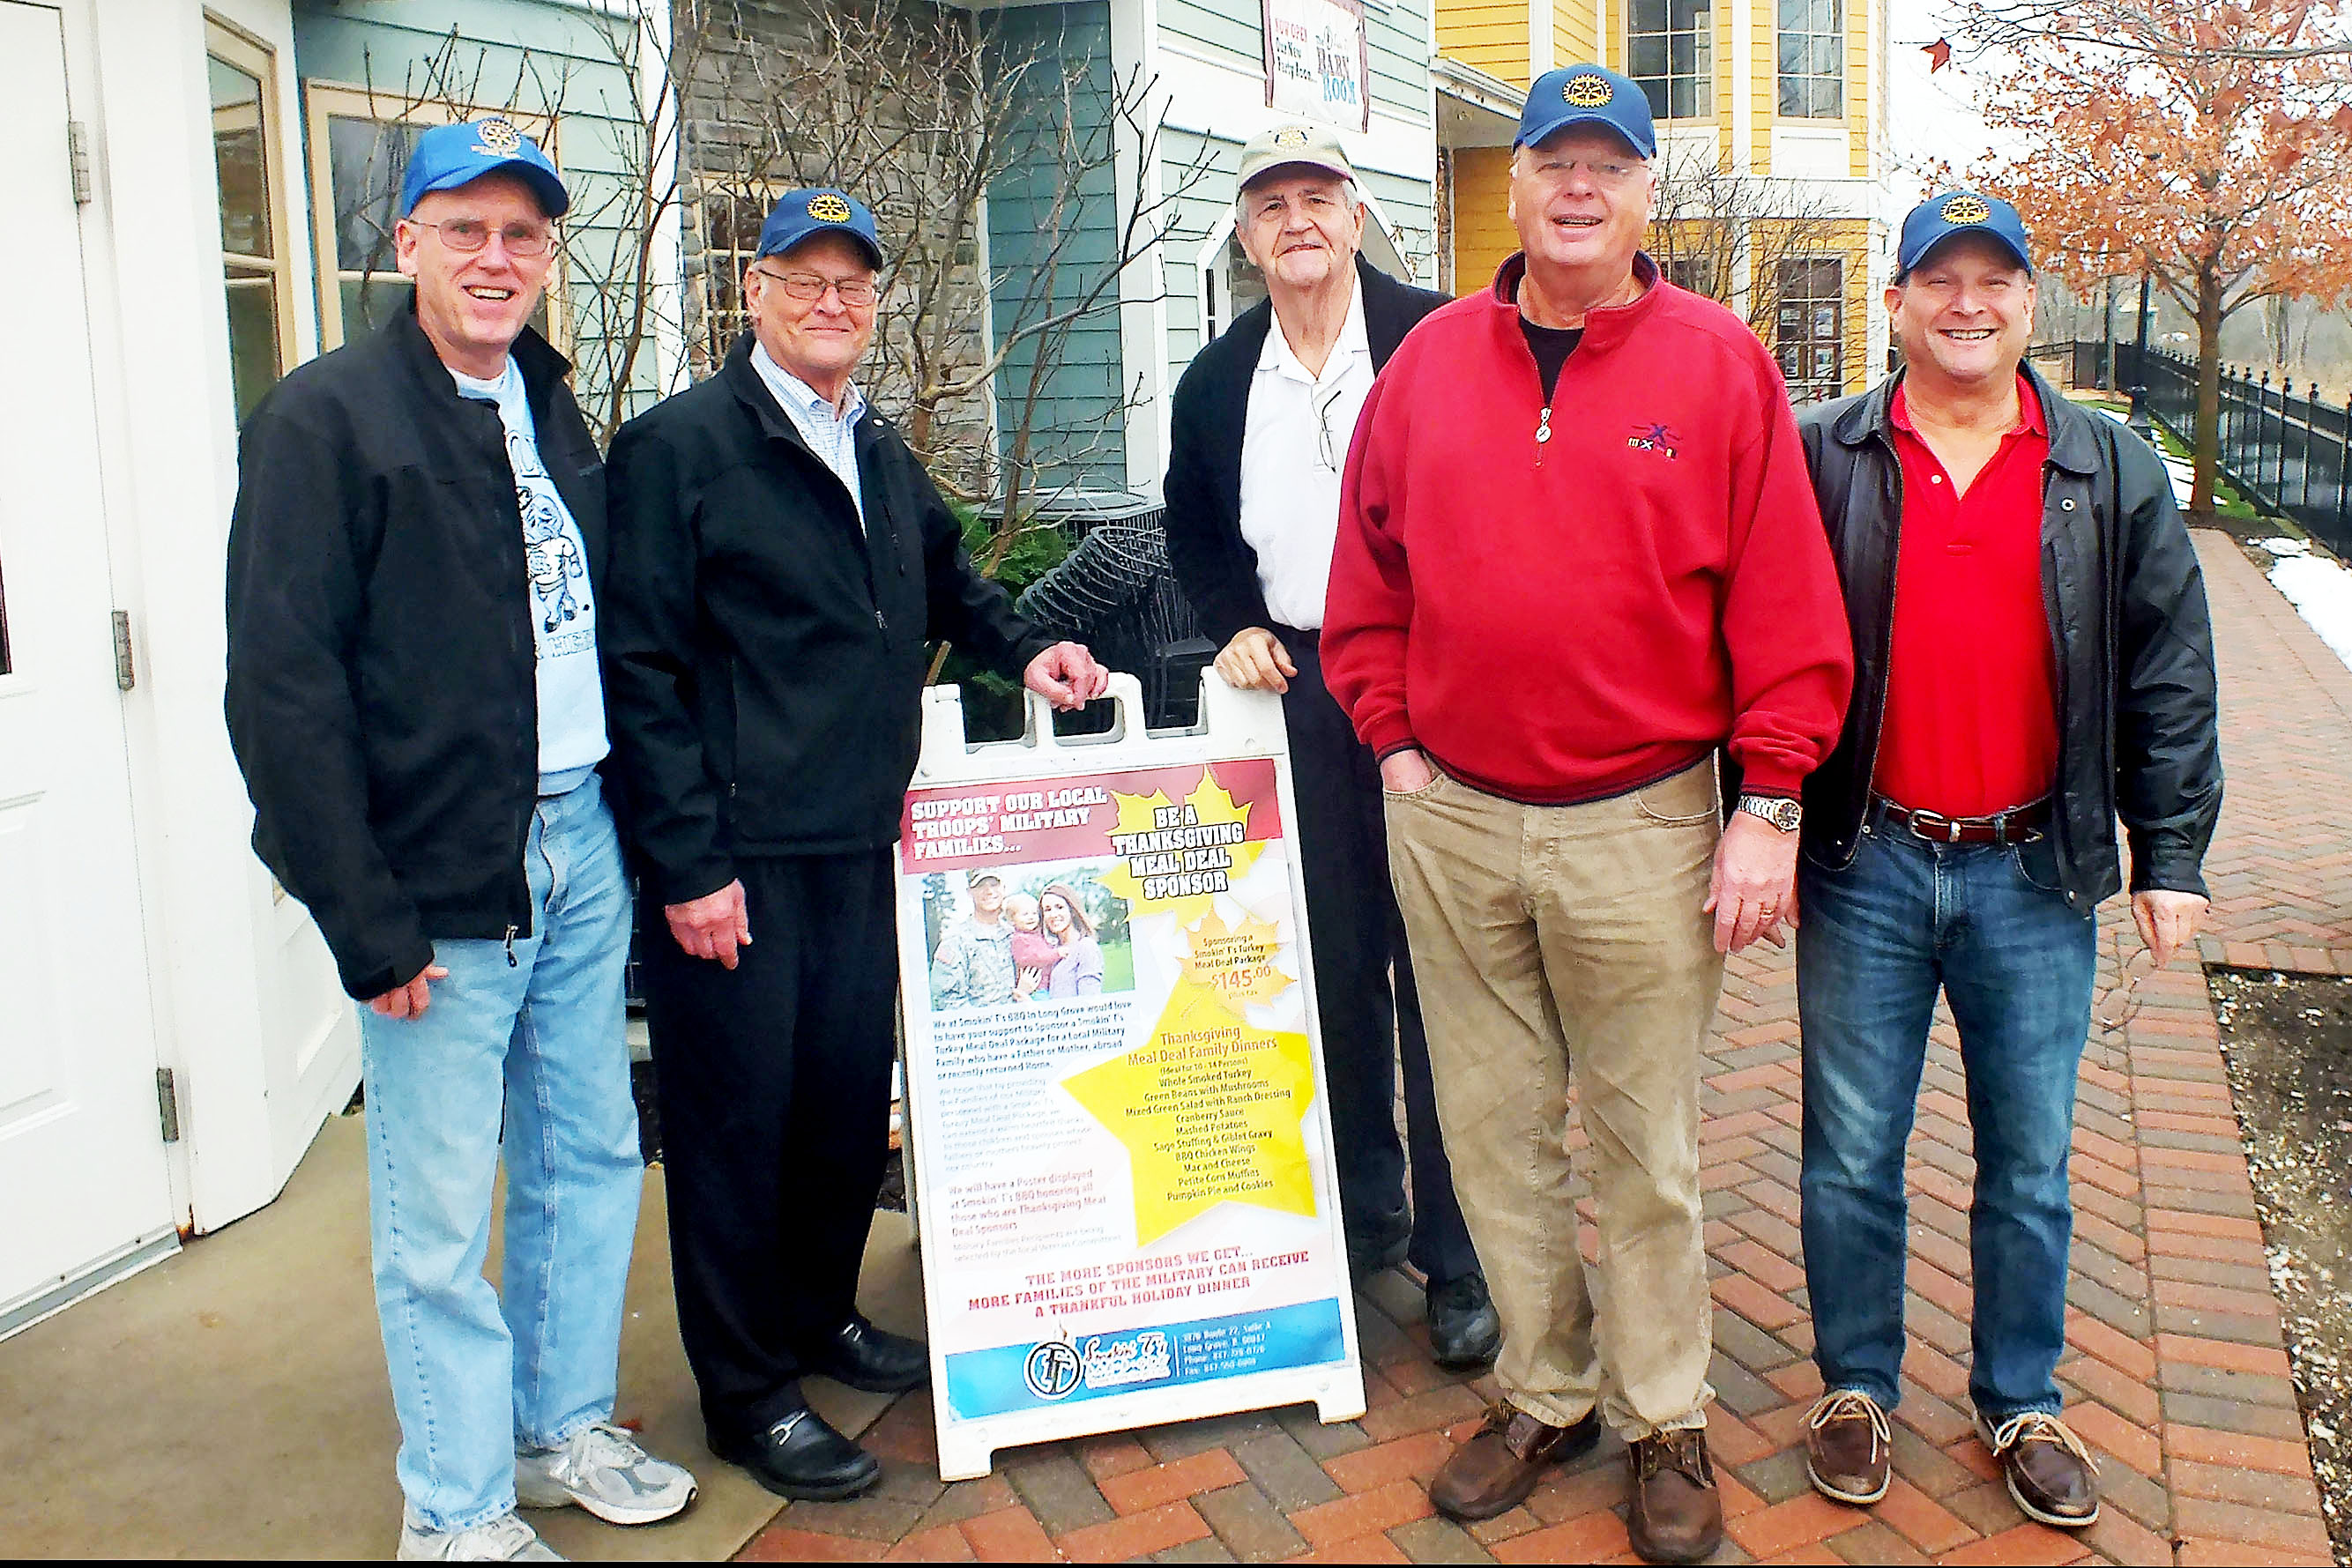 Rotarians (L to R) Ross Spencer, Jim Runnfeldt, George Dorner, Karl Riehn, and Robert Mintz prepare to deliver Thanksgiving meals to area Veterans.